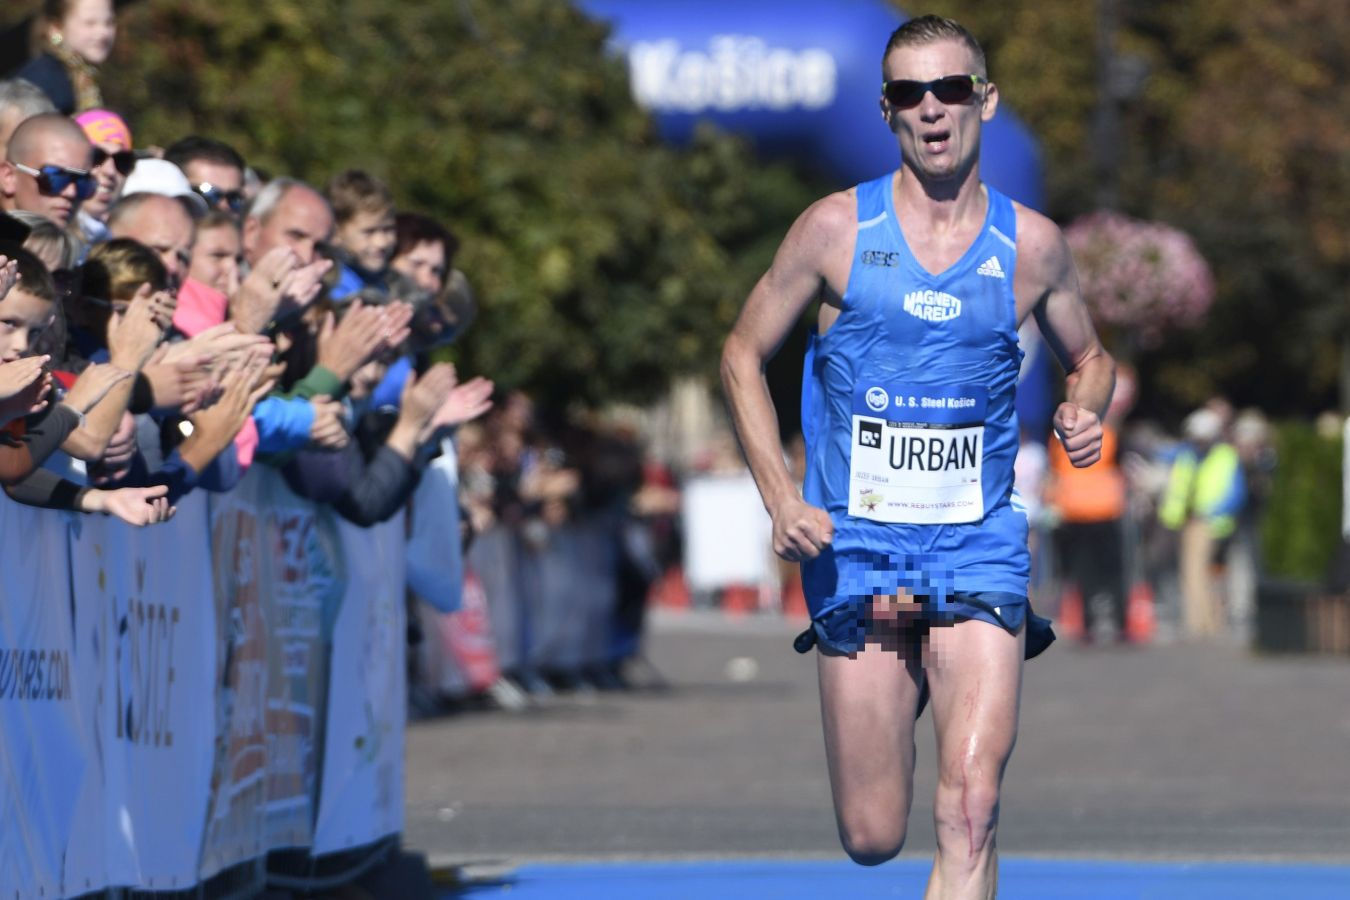 NSFW: Marathon Runner Finishes Race With His Penis Fully Out of His Shorts